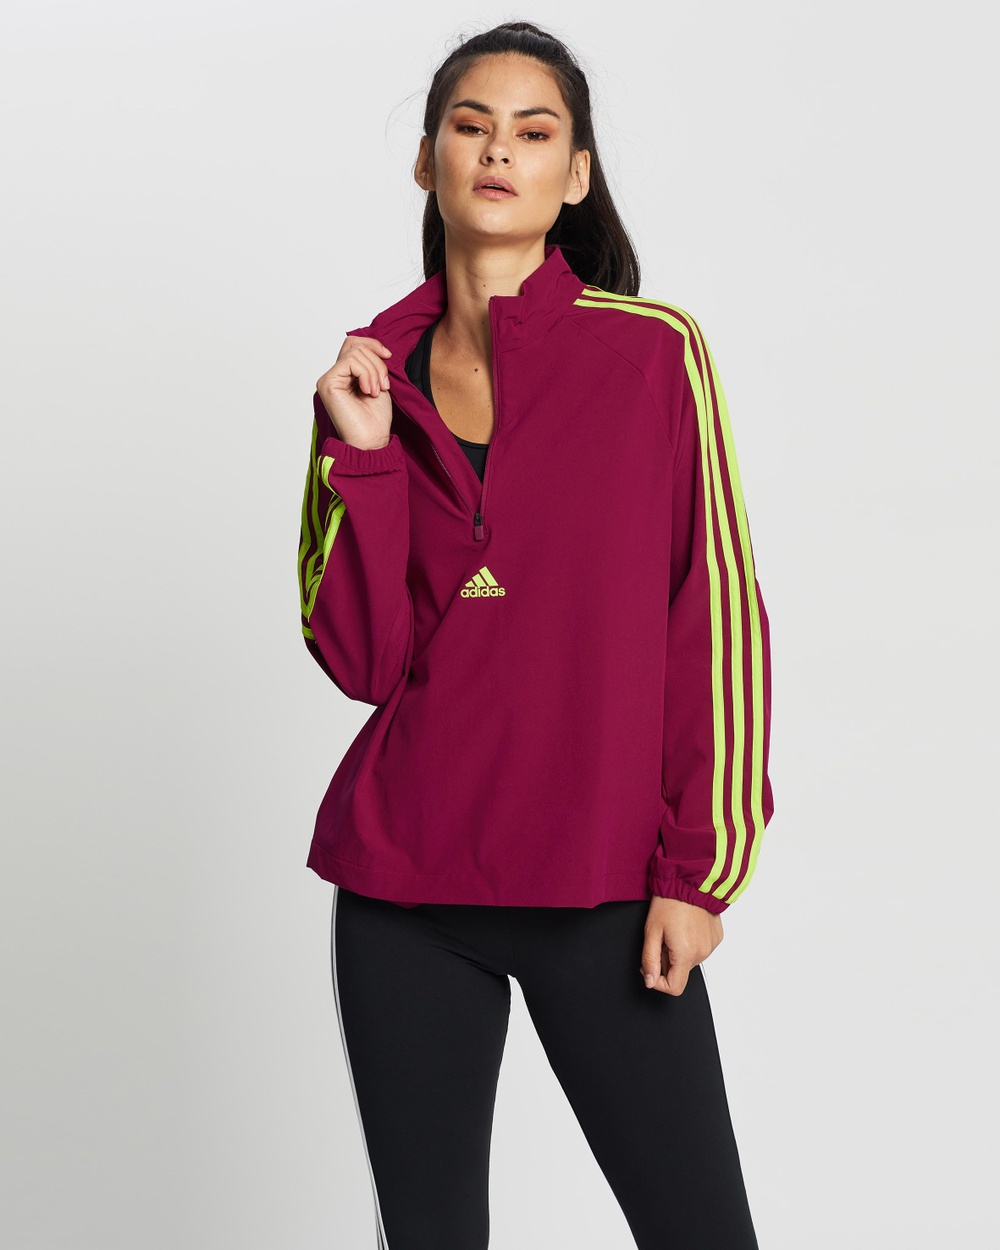 adidas Performance 3 Stripes Cover Up Jacket Sweats Power Berry & Semi Solar Slime 3-Stripes Cover-Up